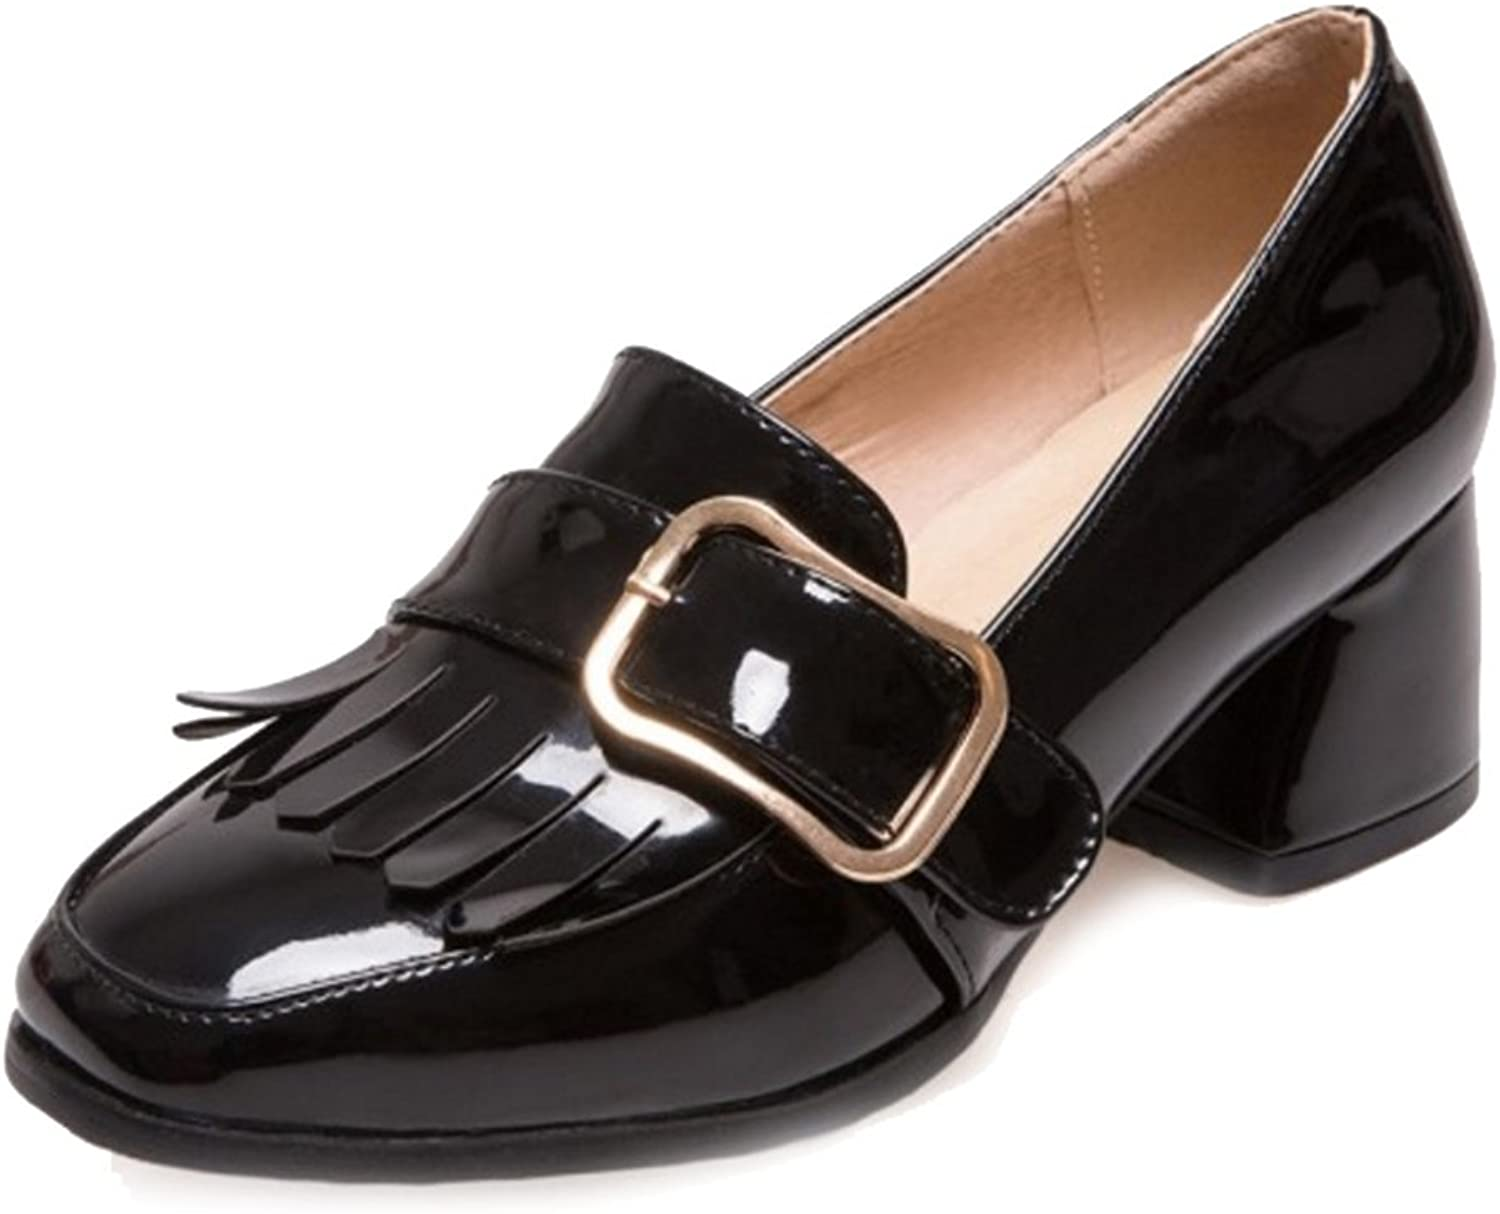 CuteFlats Loafer Flats with Large for All Fashion Girls Comfortable Slip-on Women shoes